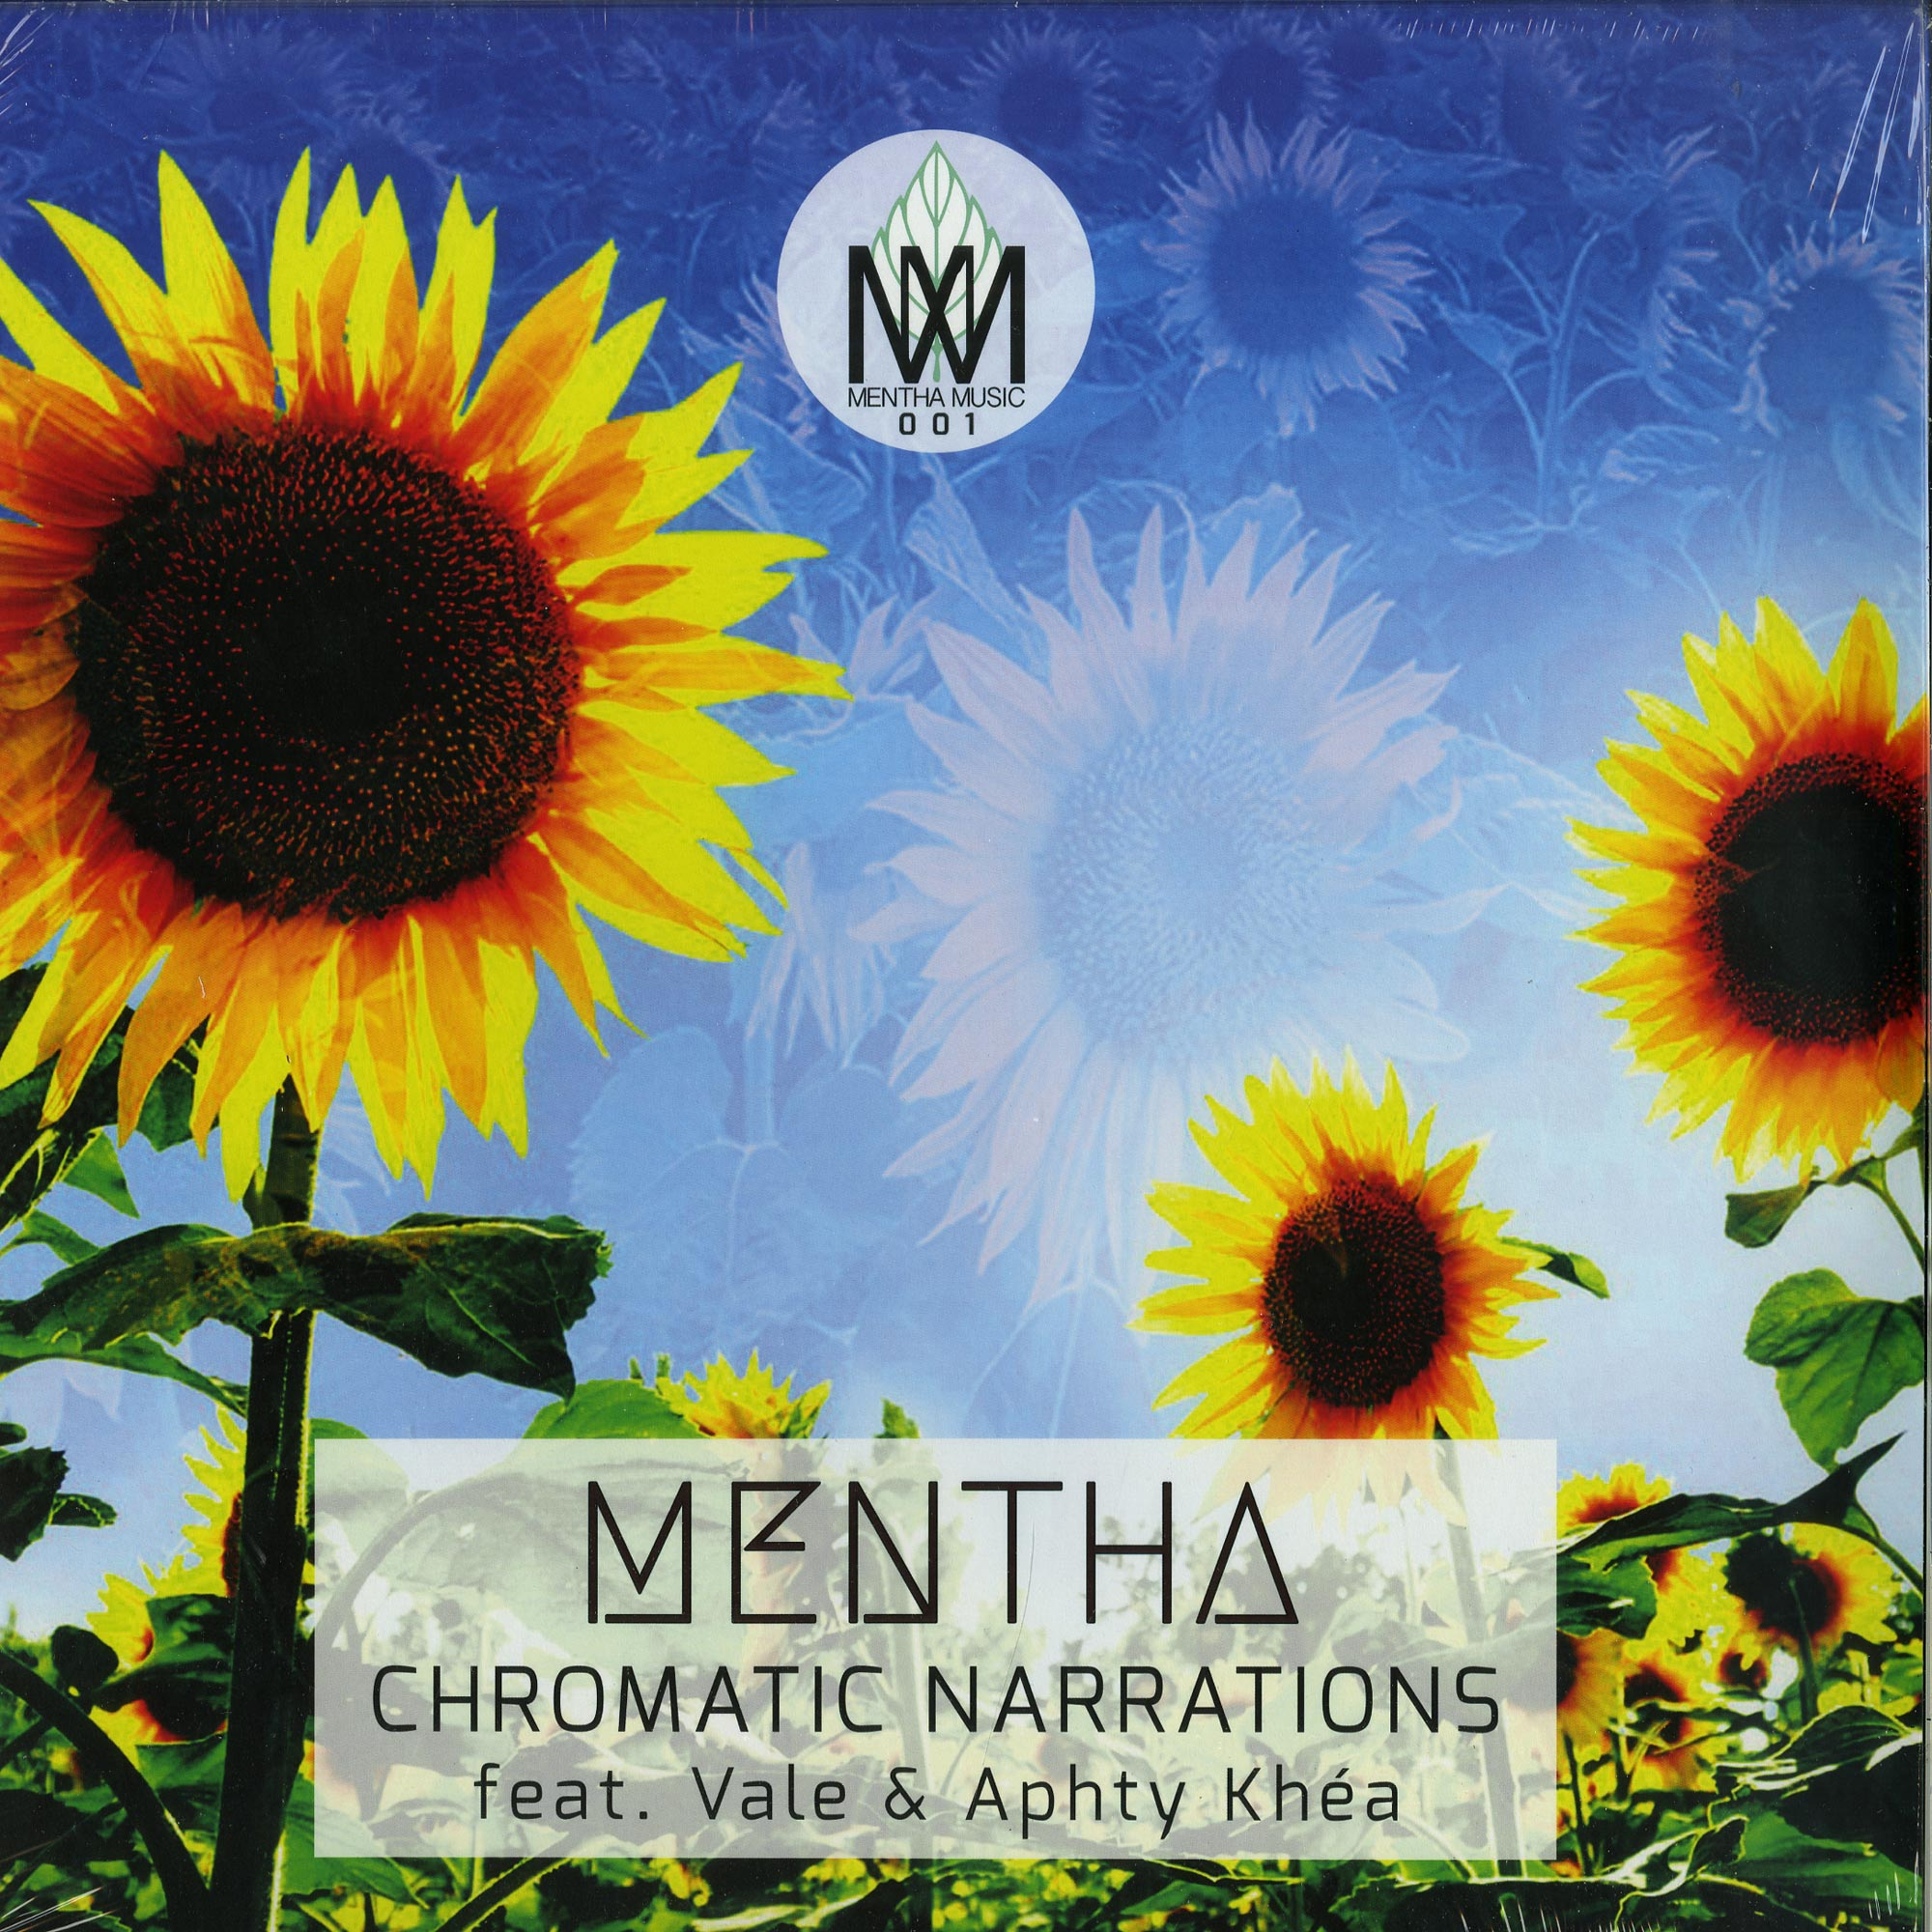 Mentha - CHROMATIC NARRATIONS FT. VALE & APHTY KH